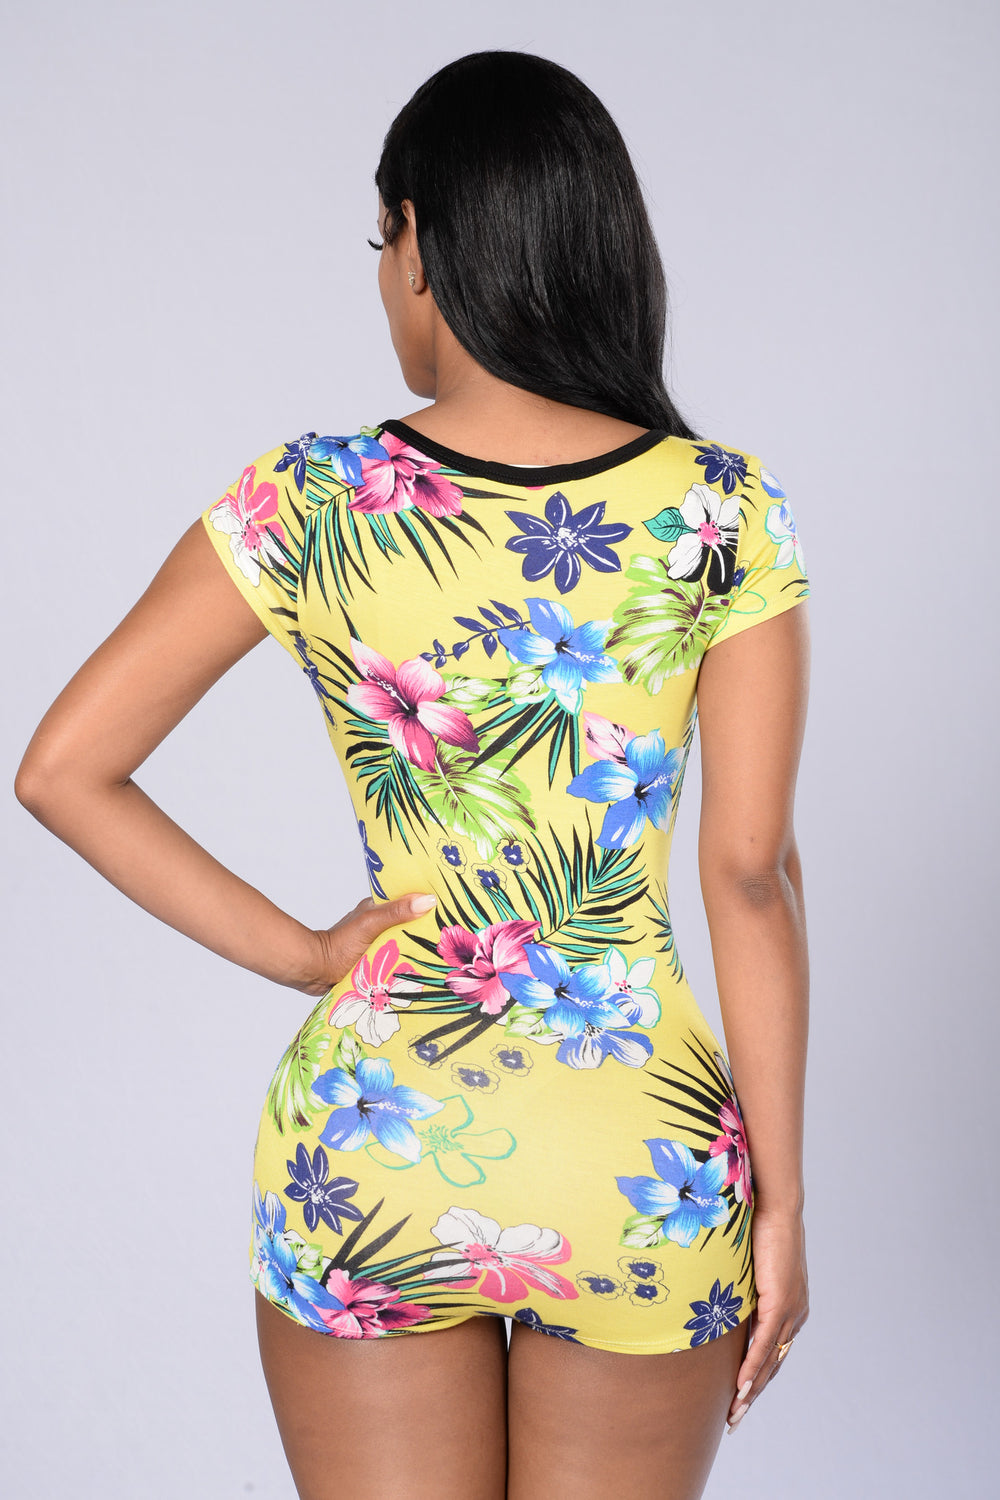 Its Finally Summer Romper - Yellow Floral